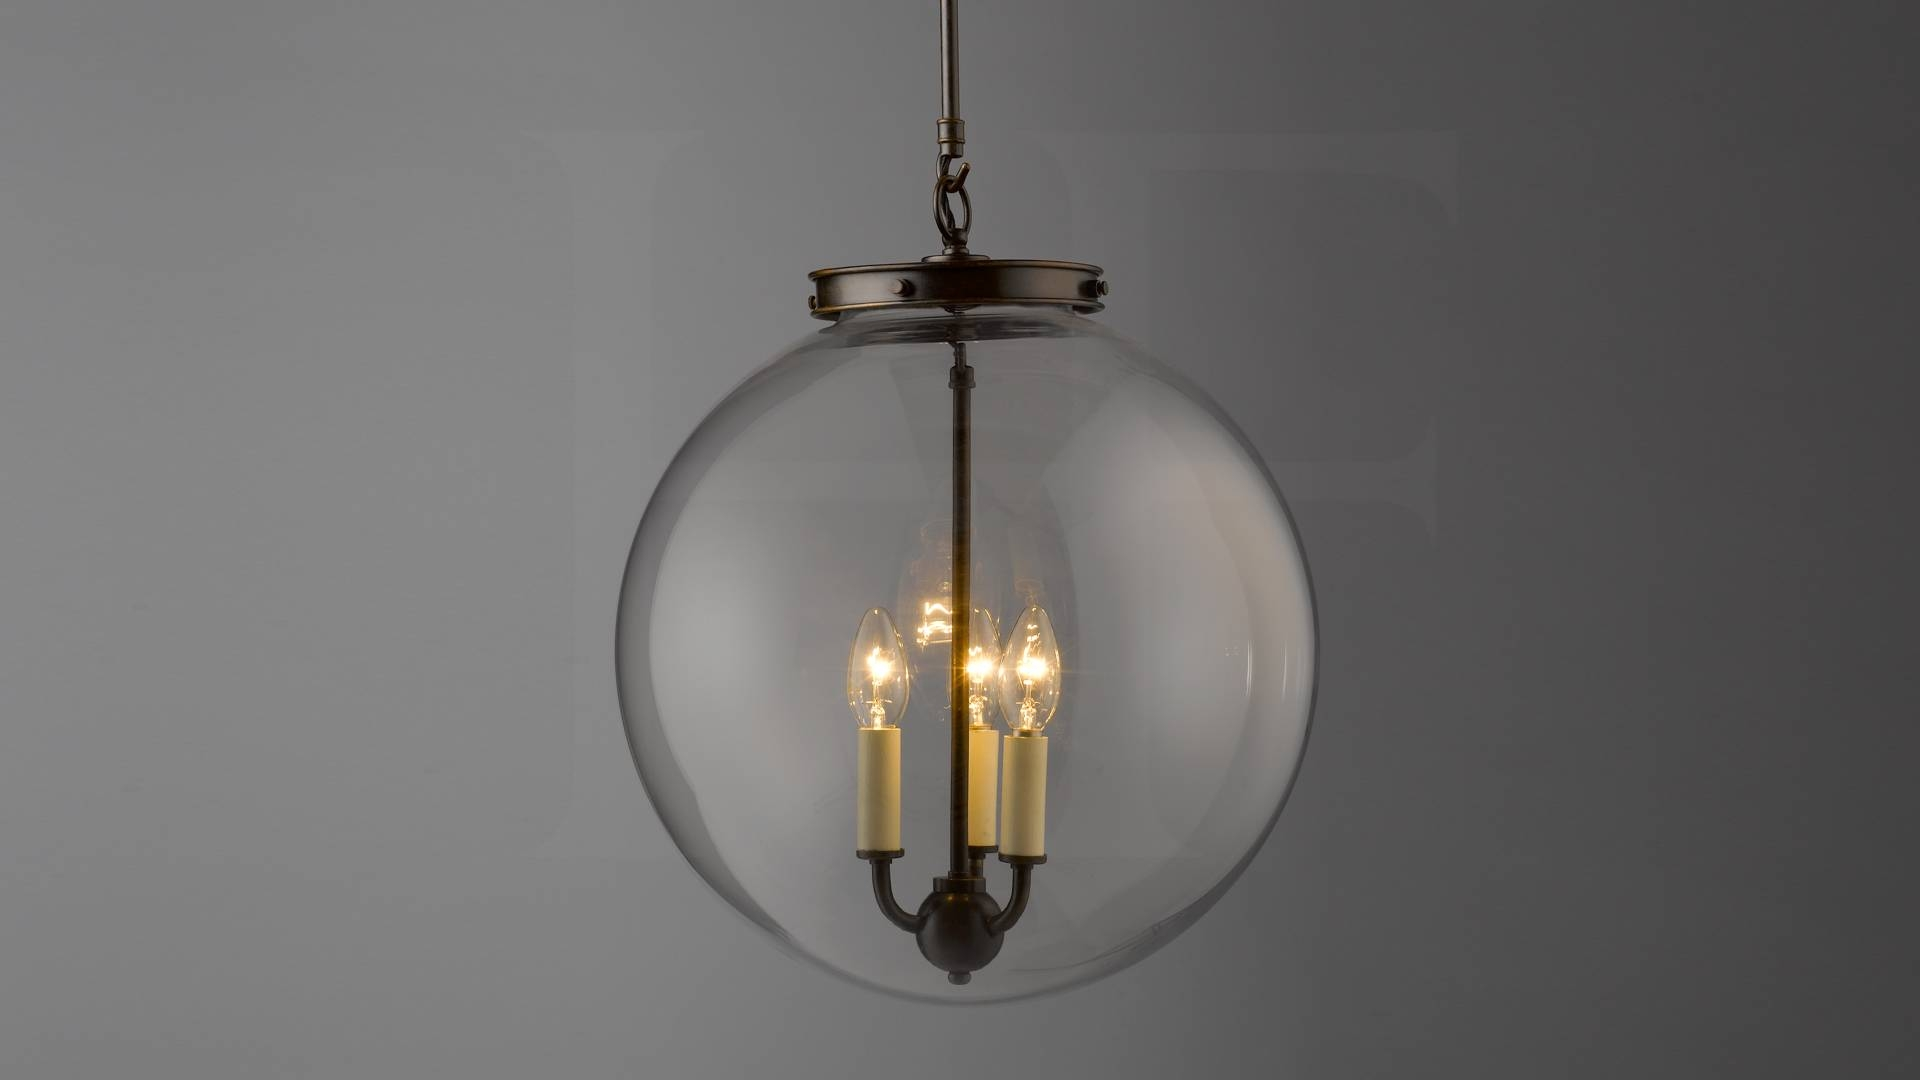 Pendant Lighting Ideas: Modern Design Large Glass Globe Pendant pertaining to Clear Glass Globe Pendant Light Fixtures (Image 8 of 15)